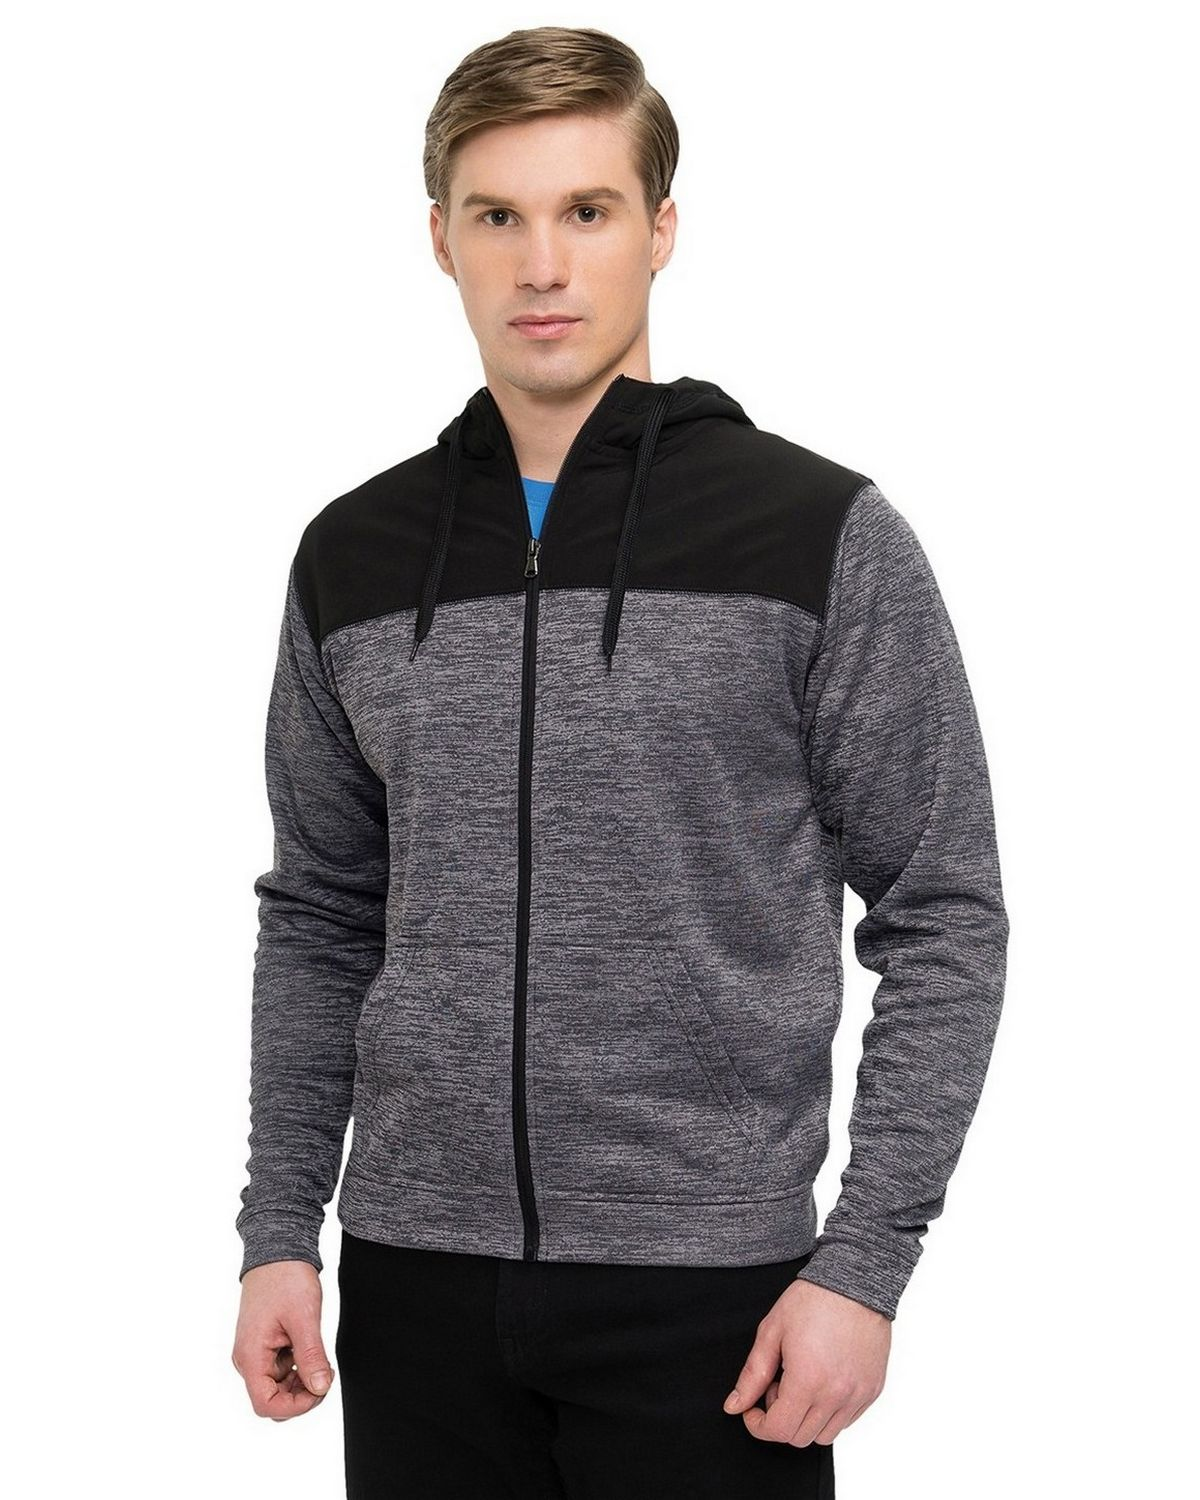 Tri-Mountain Performance F7455 Mens Full Zip Jacket - Charcoal/Black - S F7455